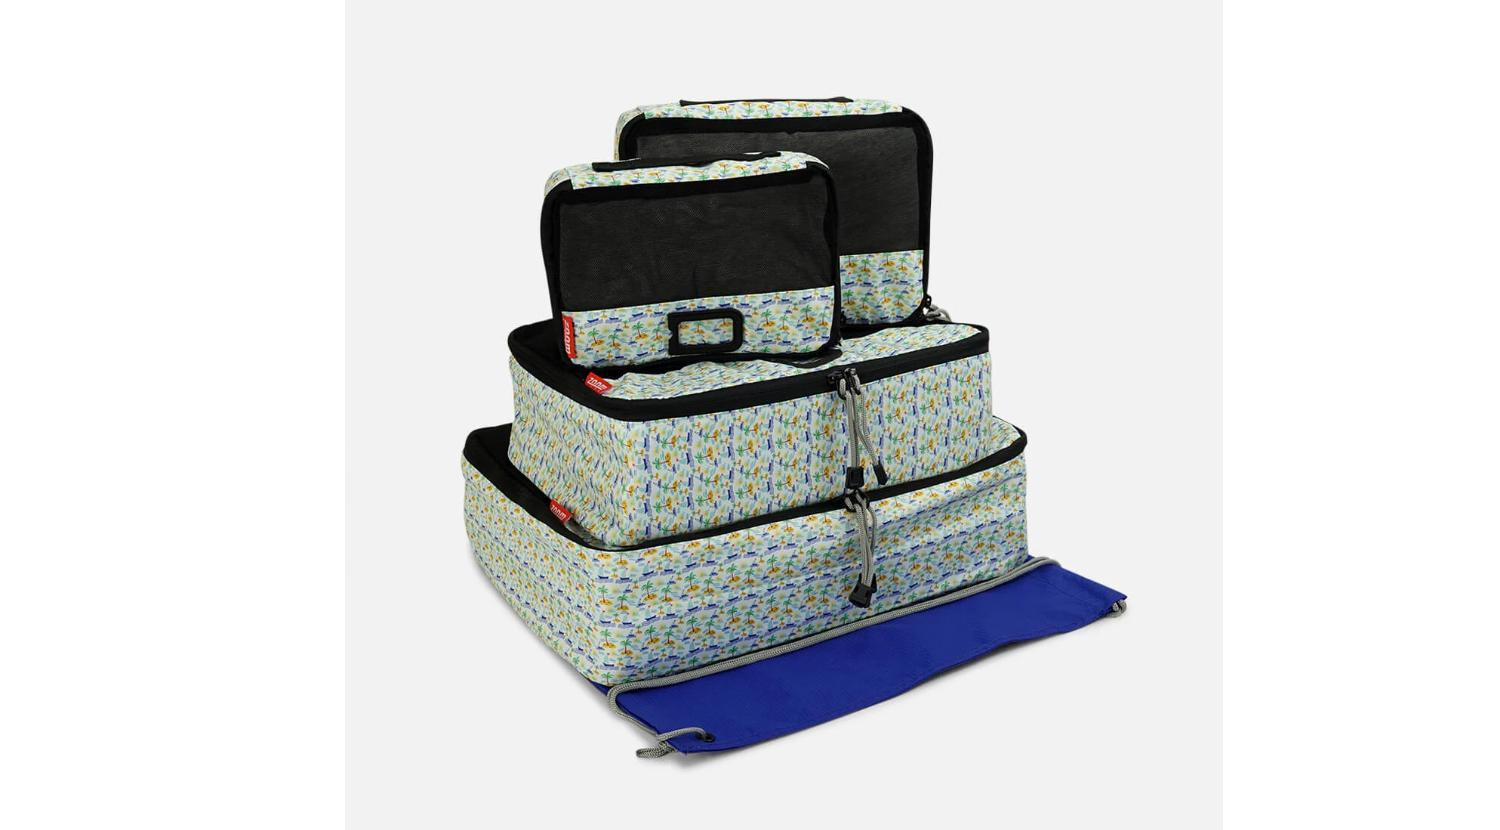 Designer Printed Packing Cubes 5 Pc Set by Zoomlite